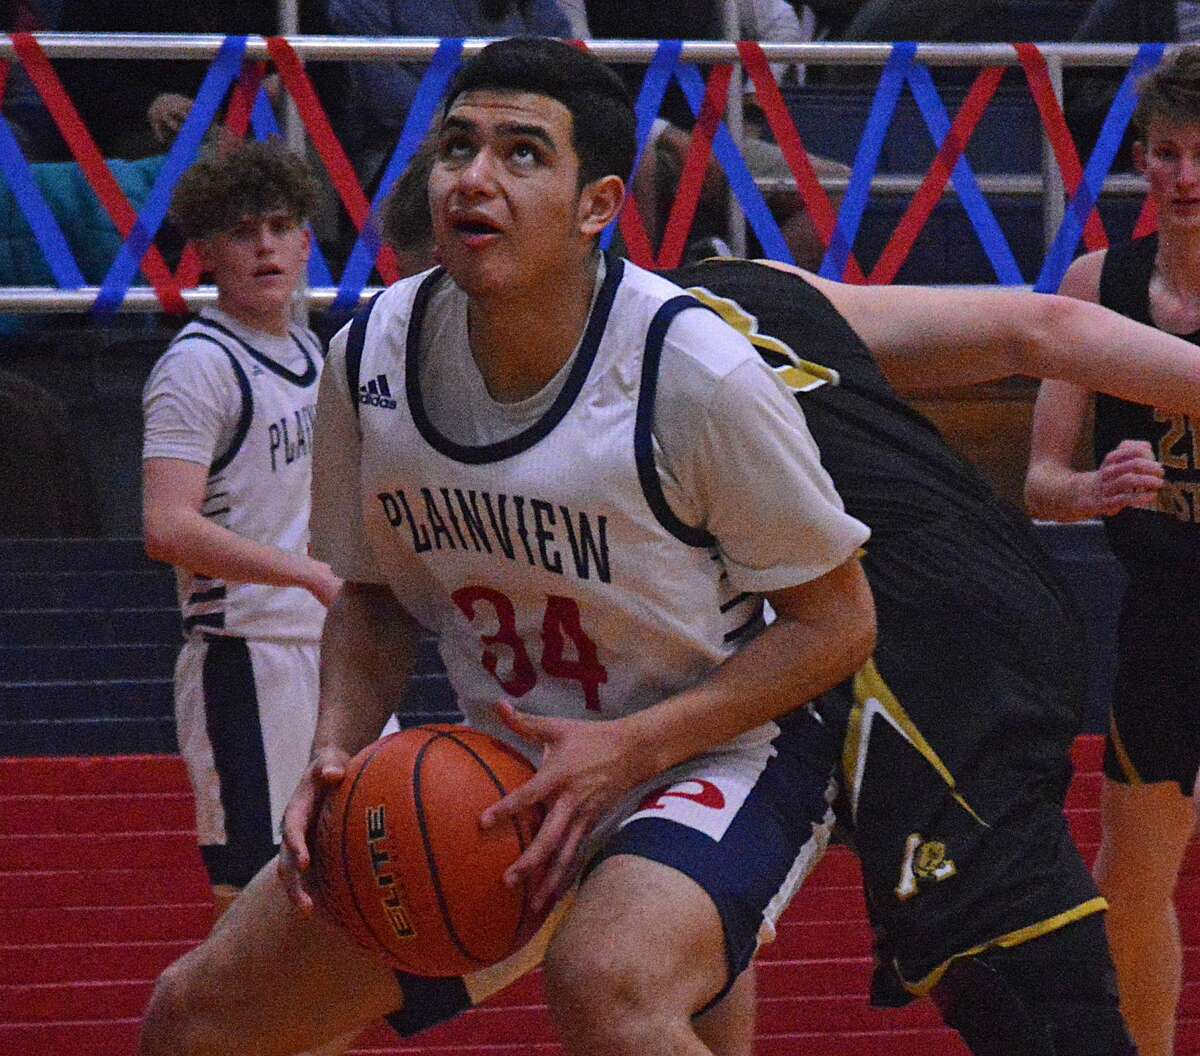 Plainview's Jesus Quiroga gets around an Amarillo defender for a shot near the basket during their District 3-5A boys basketball game on Tuesday night in the Dog House. Looking on is Plainview's Austin Hauk.